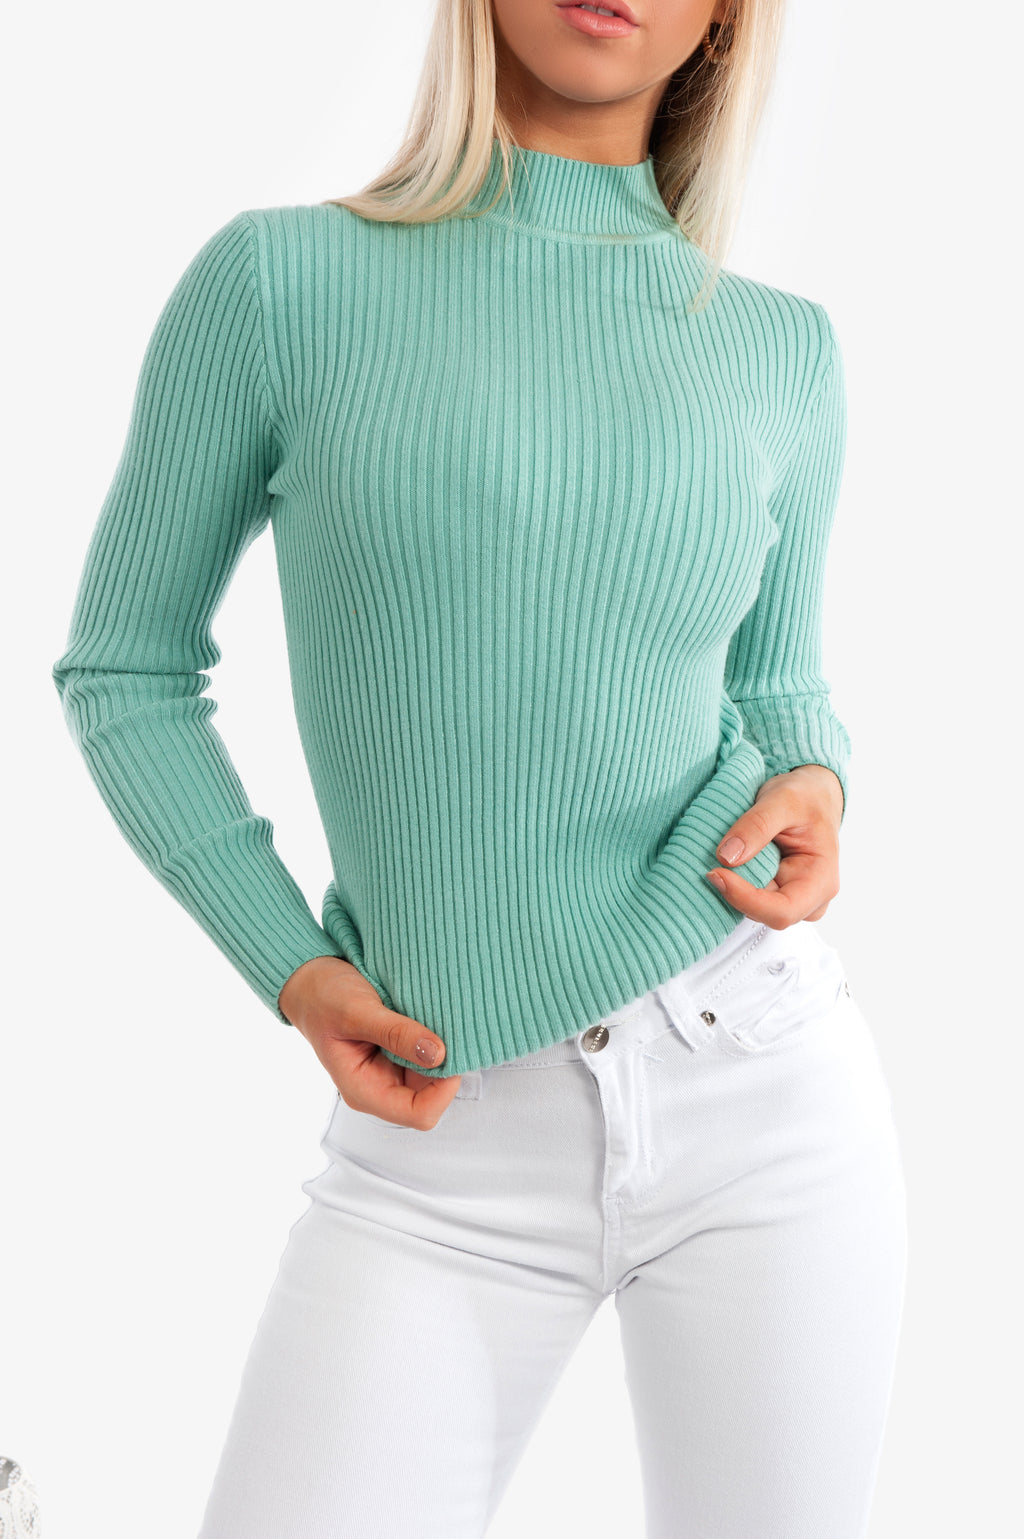 Aliya Knit Top - Mint - Islandlace